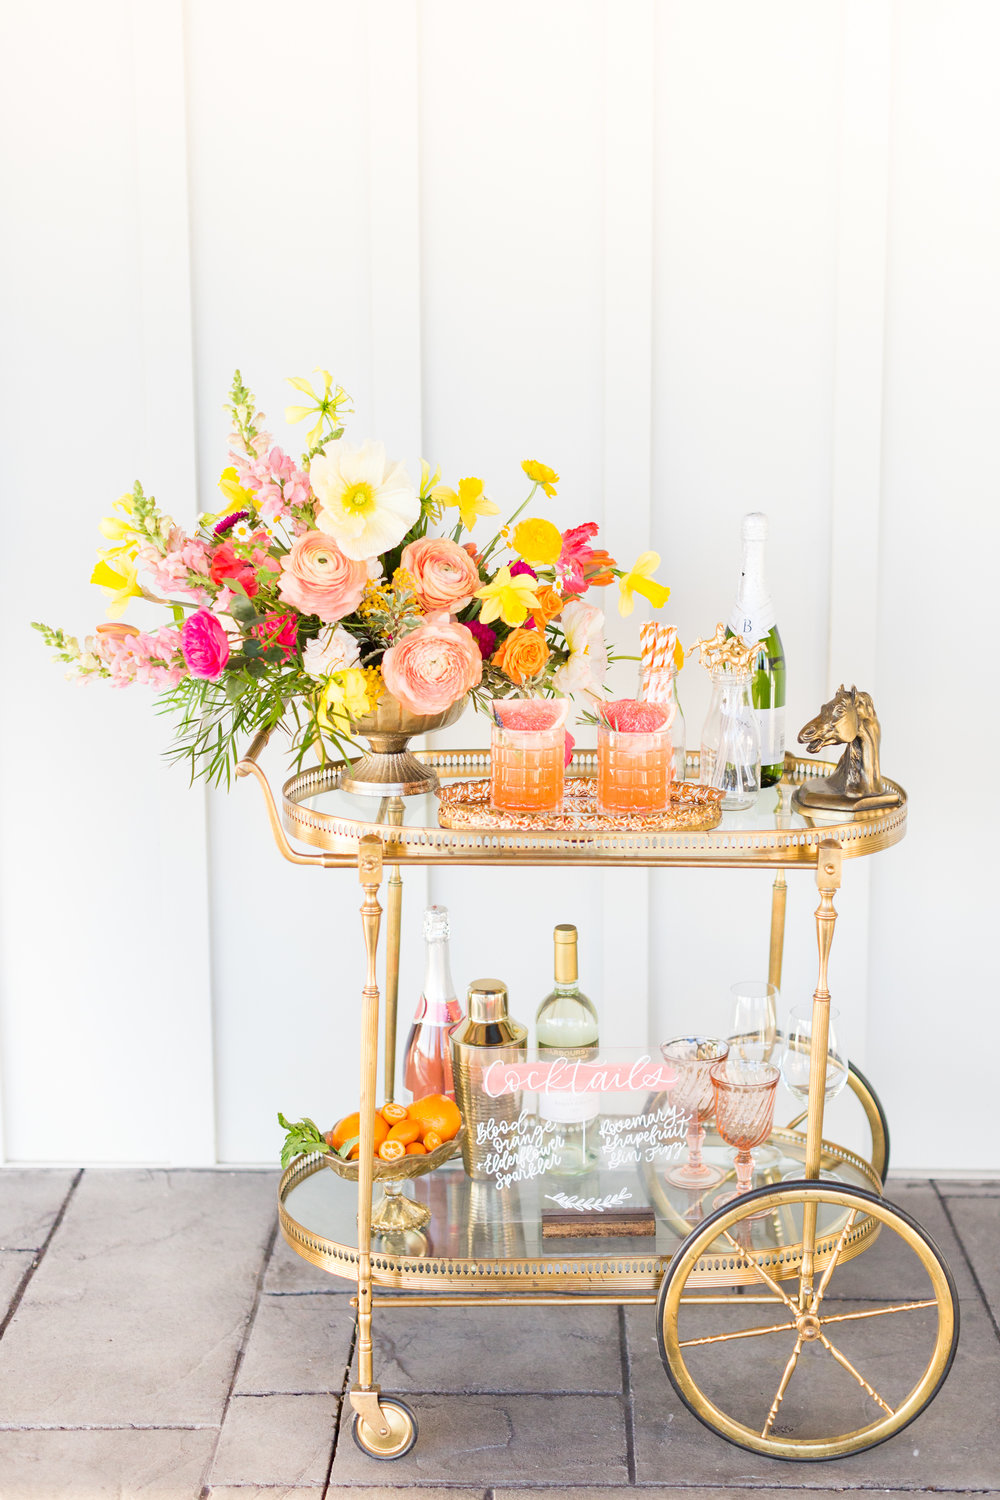 Vintage bar cart with flowers and cocktails